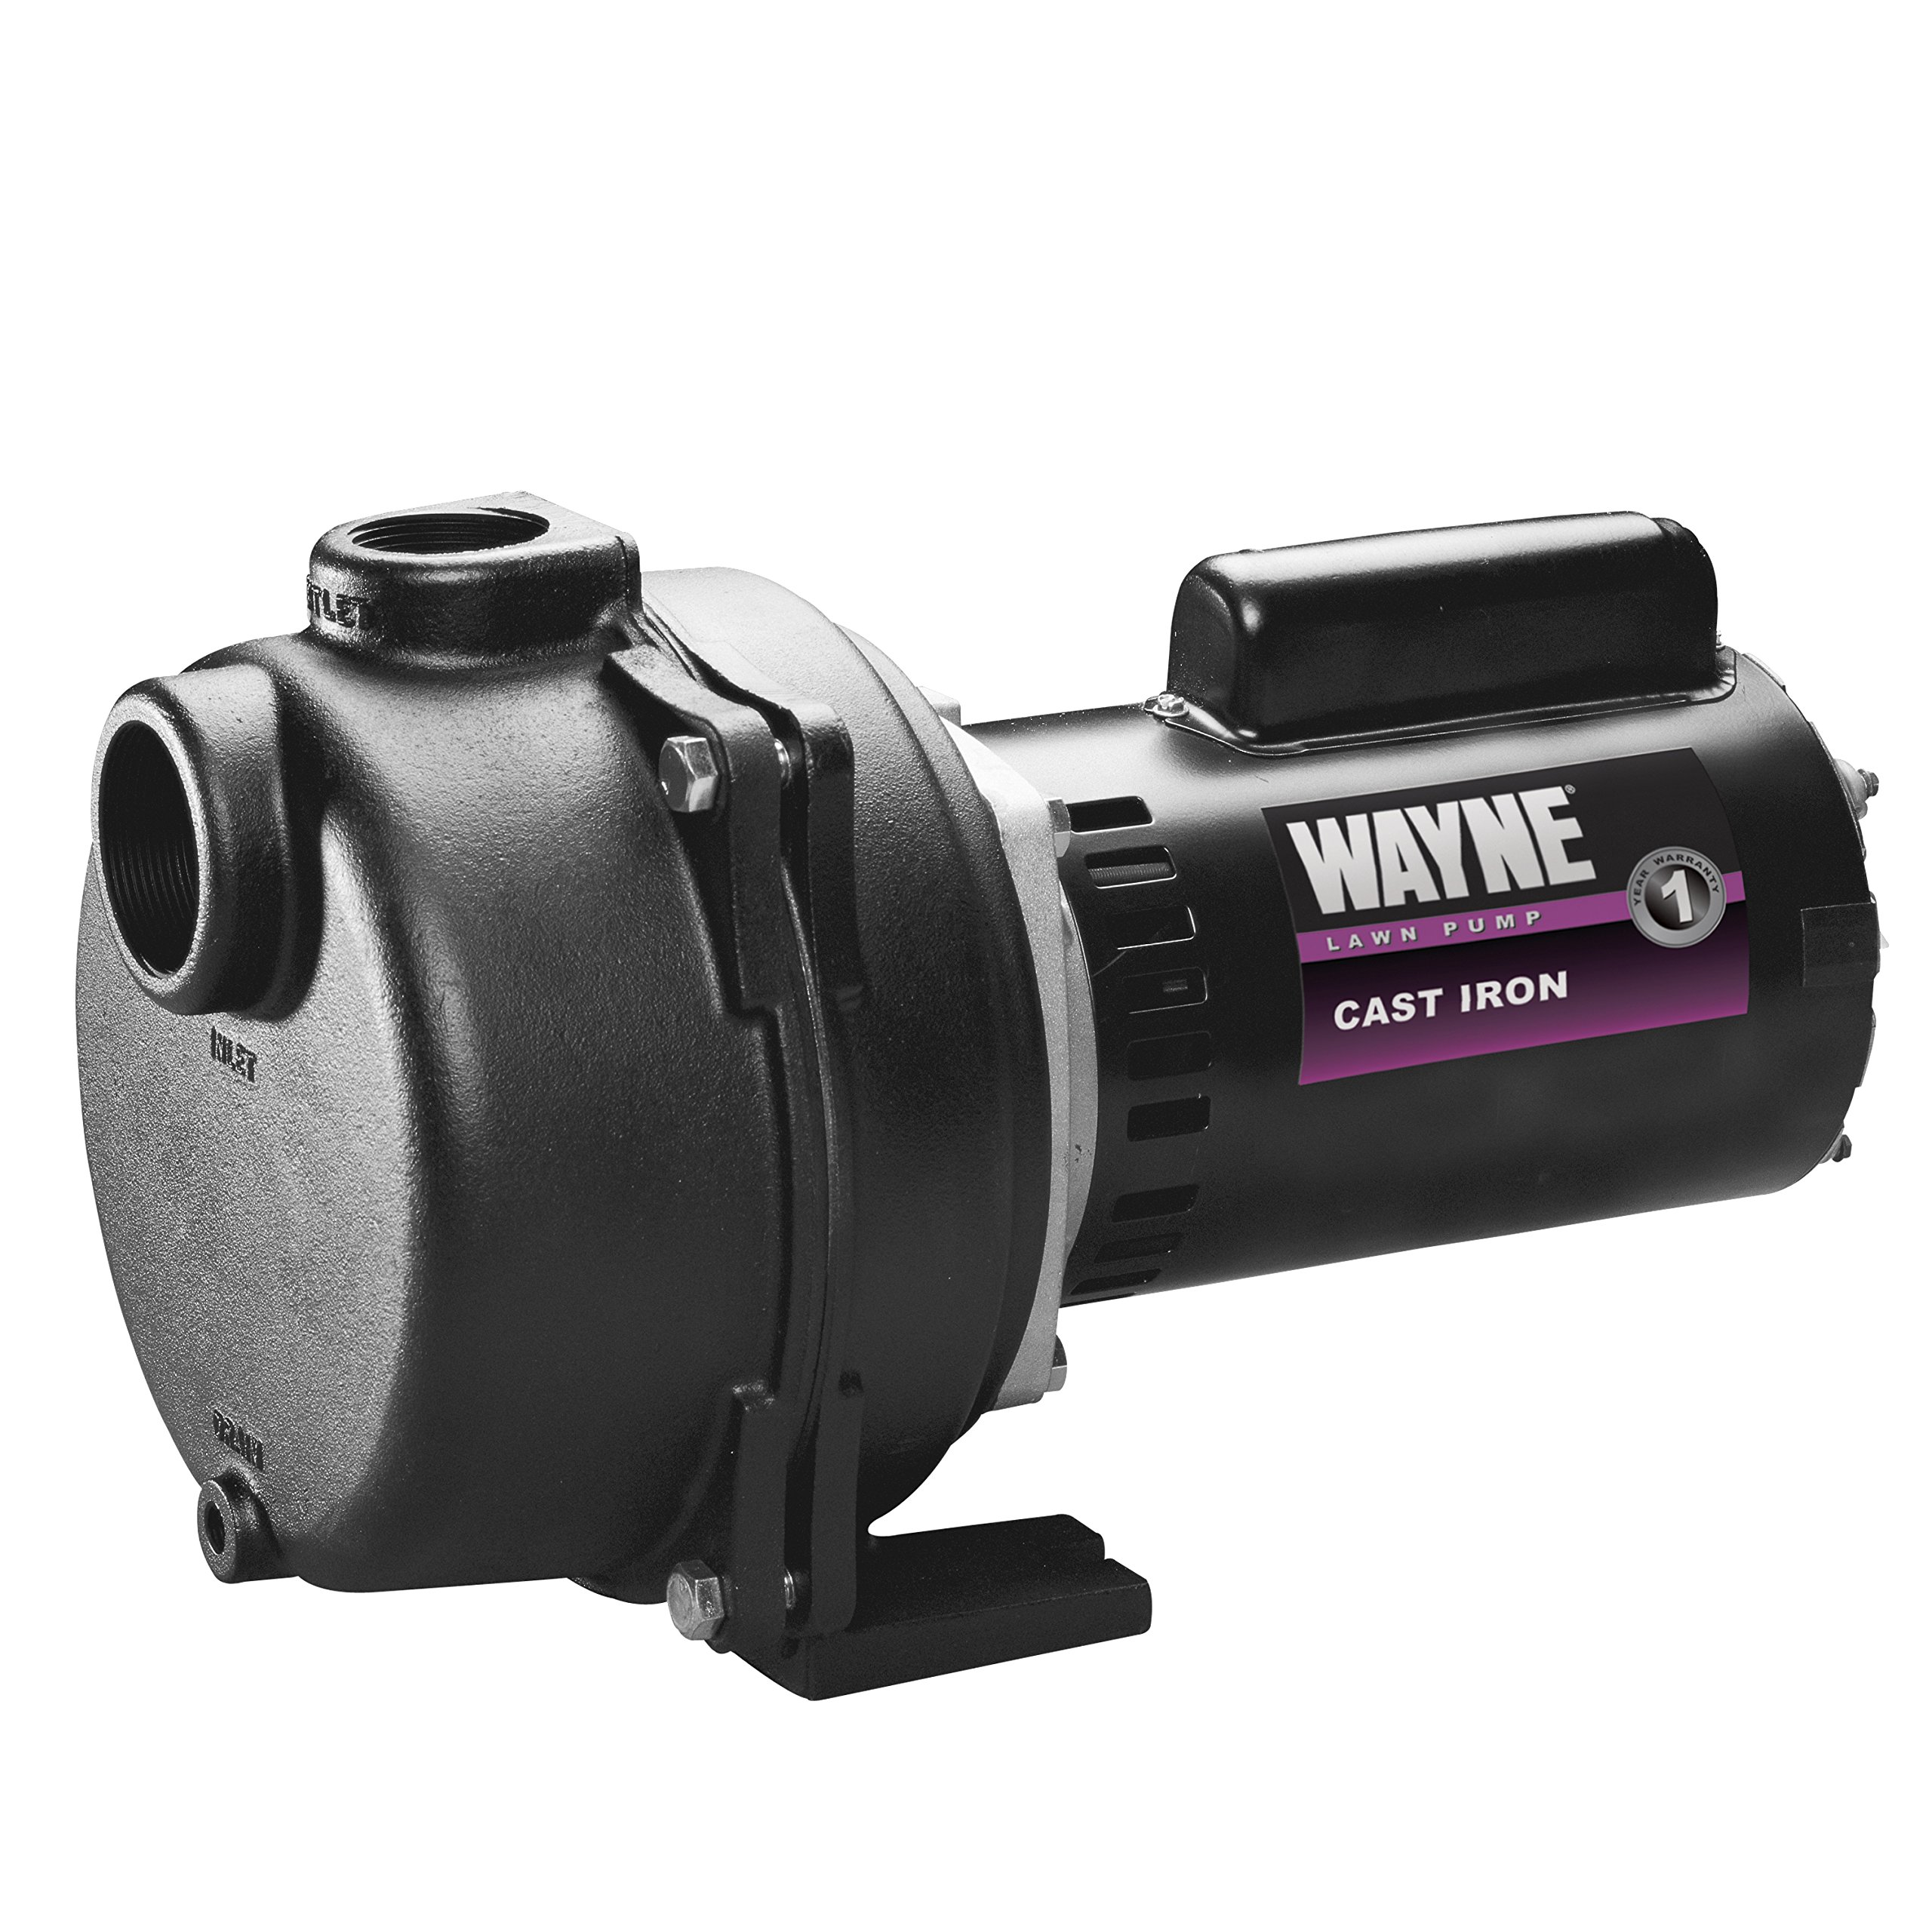 WAYNE WLS150 1.5 HP High Volume Cast Iron Lawn Sprinkling Pump by Wayne